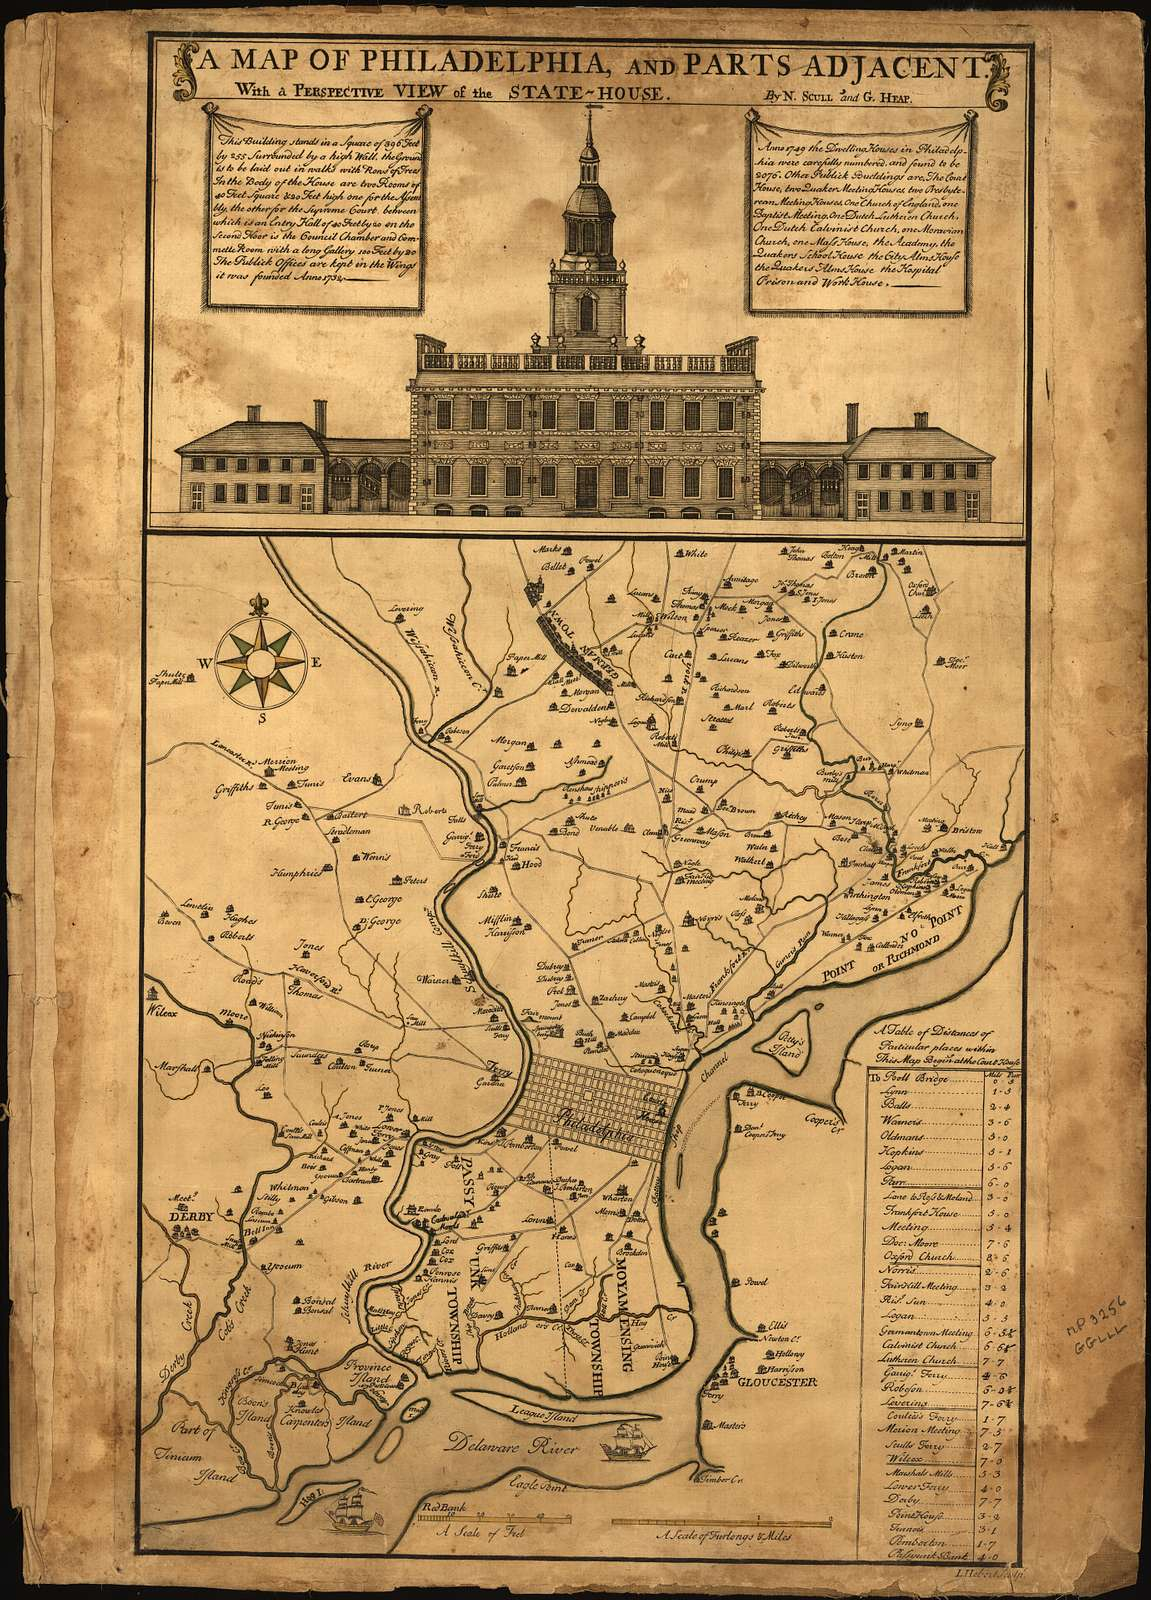 A map of Philadelphia and parts adjacent : with a perspective view of the State-House /